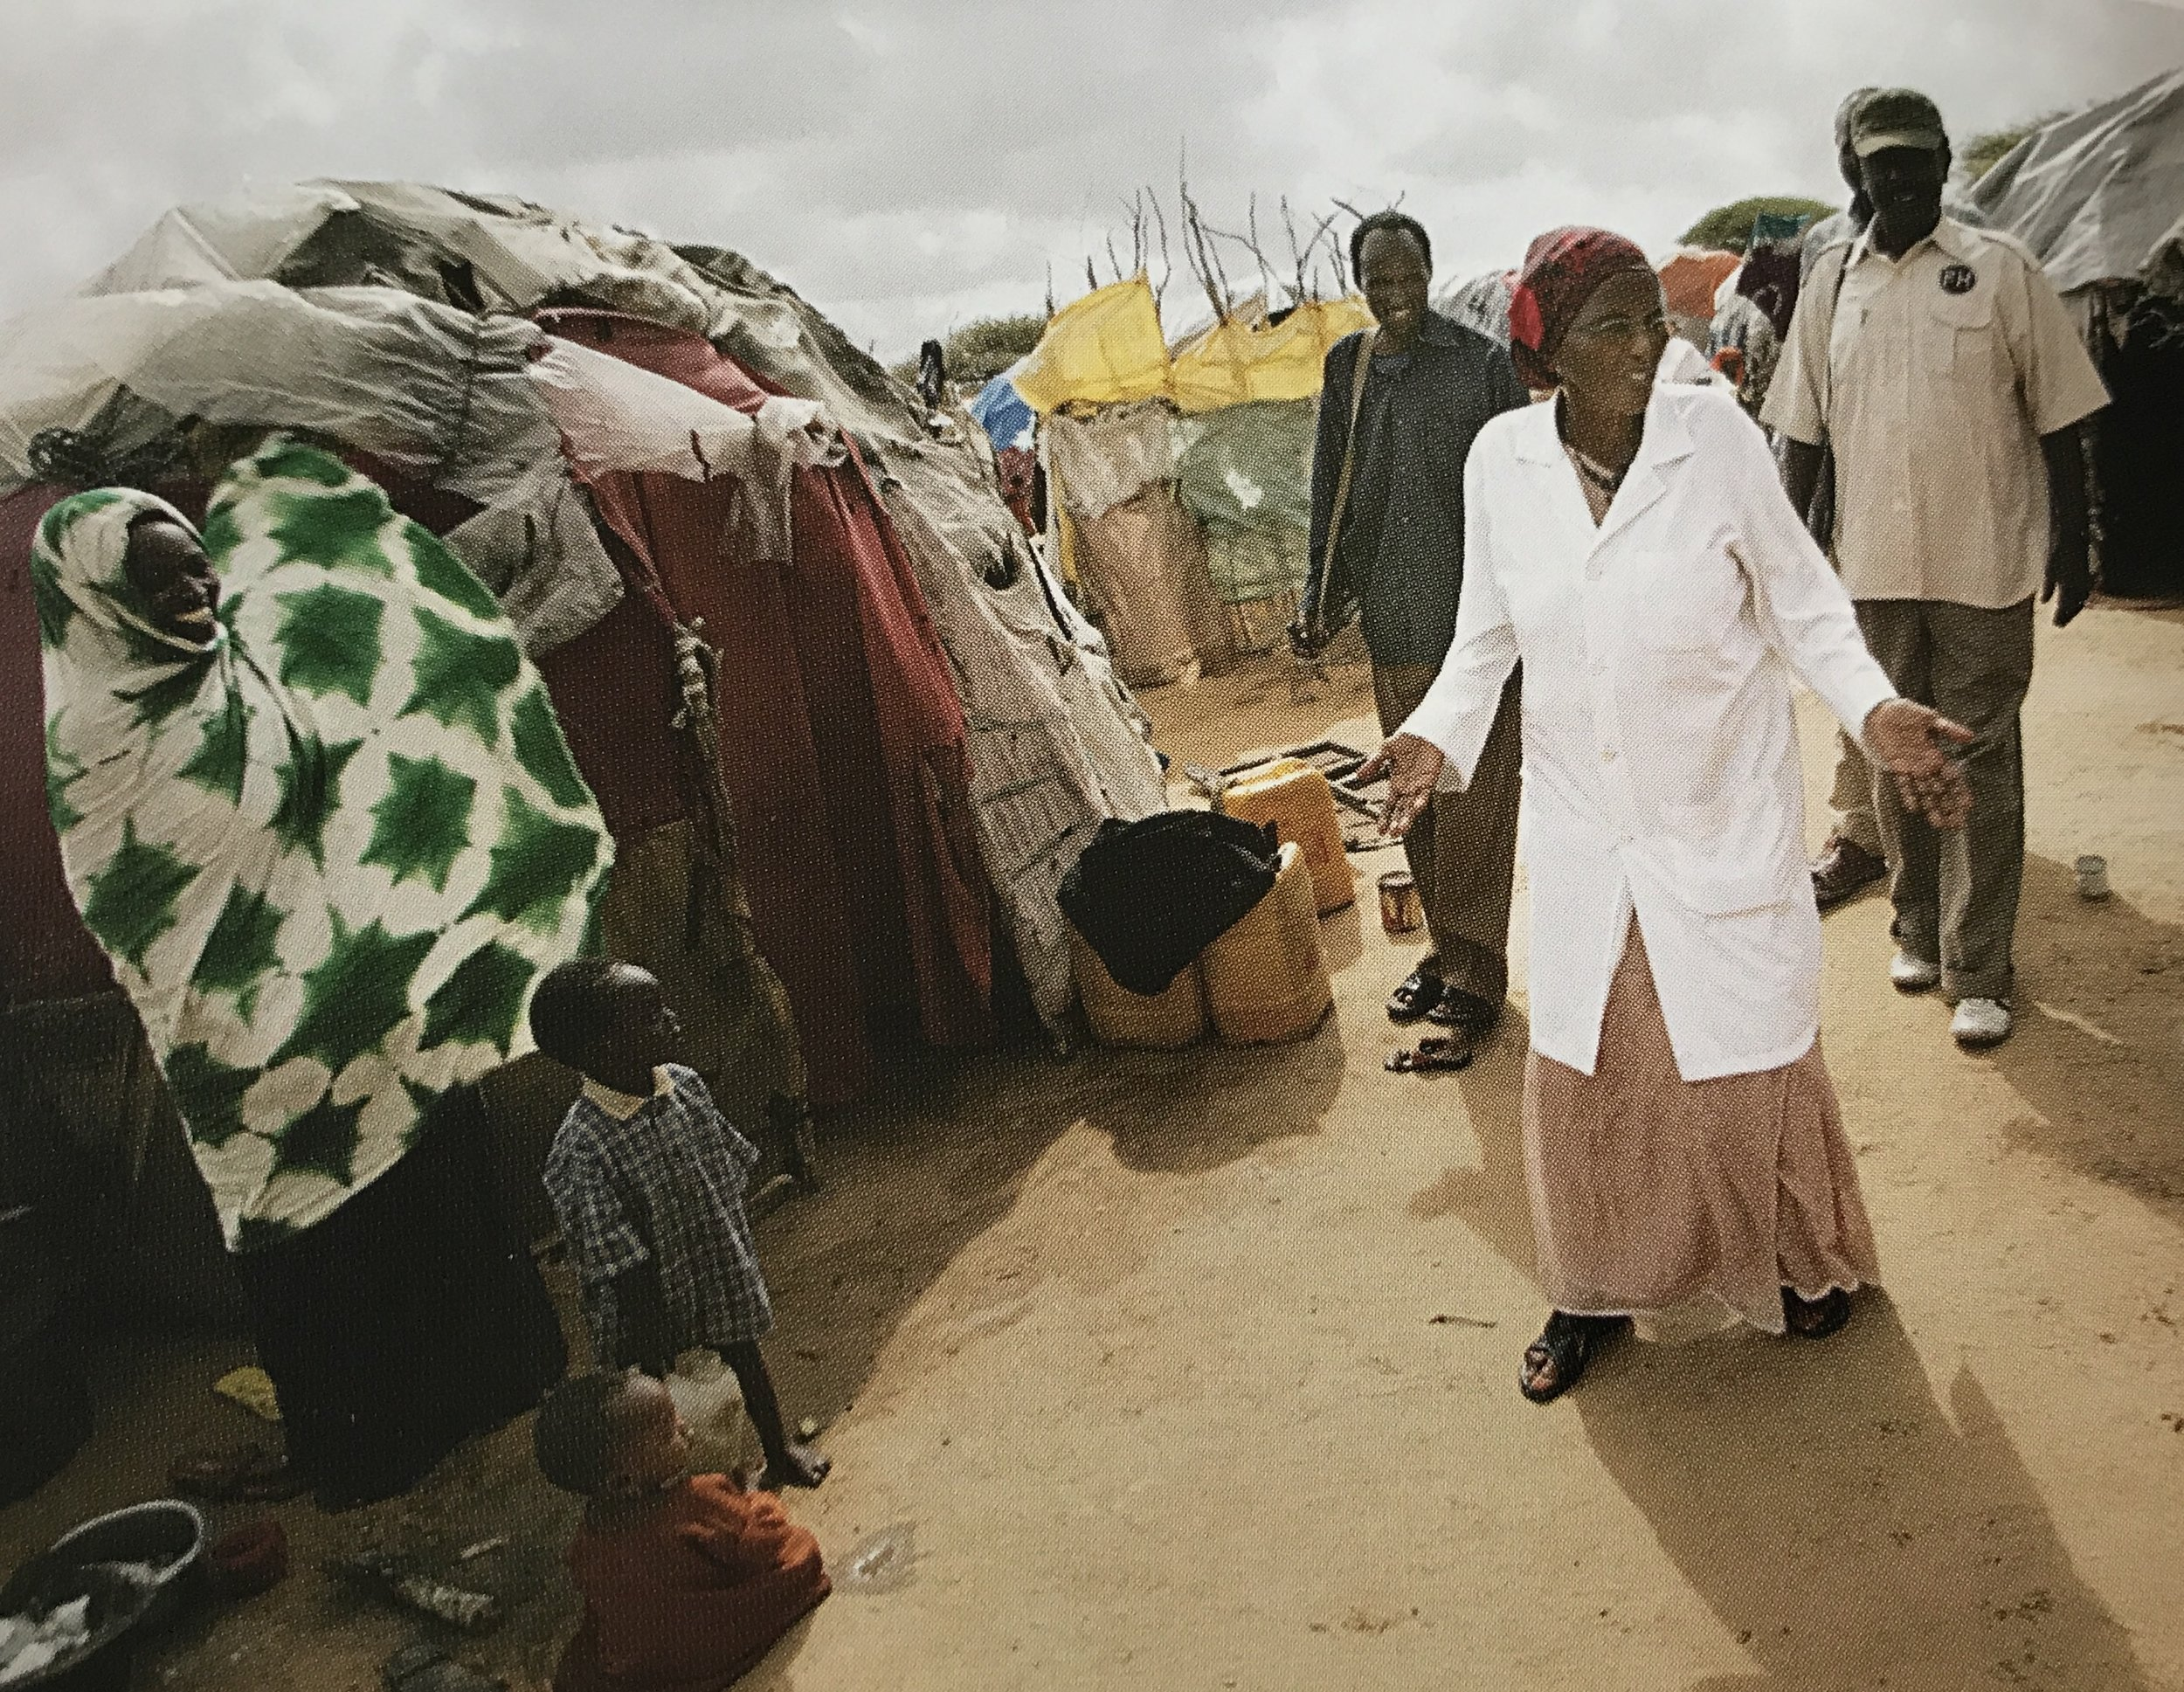 Dr. Hawa in the camp (2007). Photo: Kuni Takahashi/Getty Images.